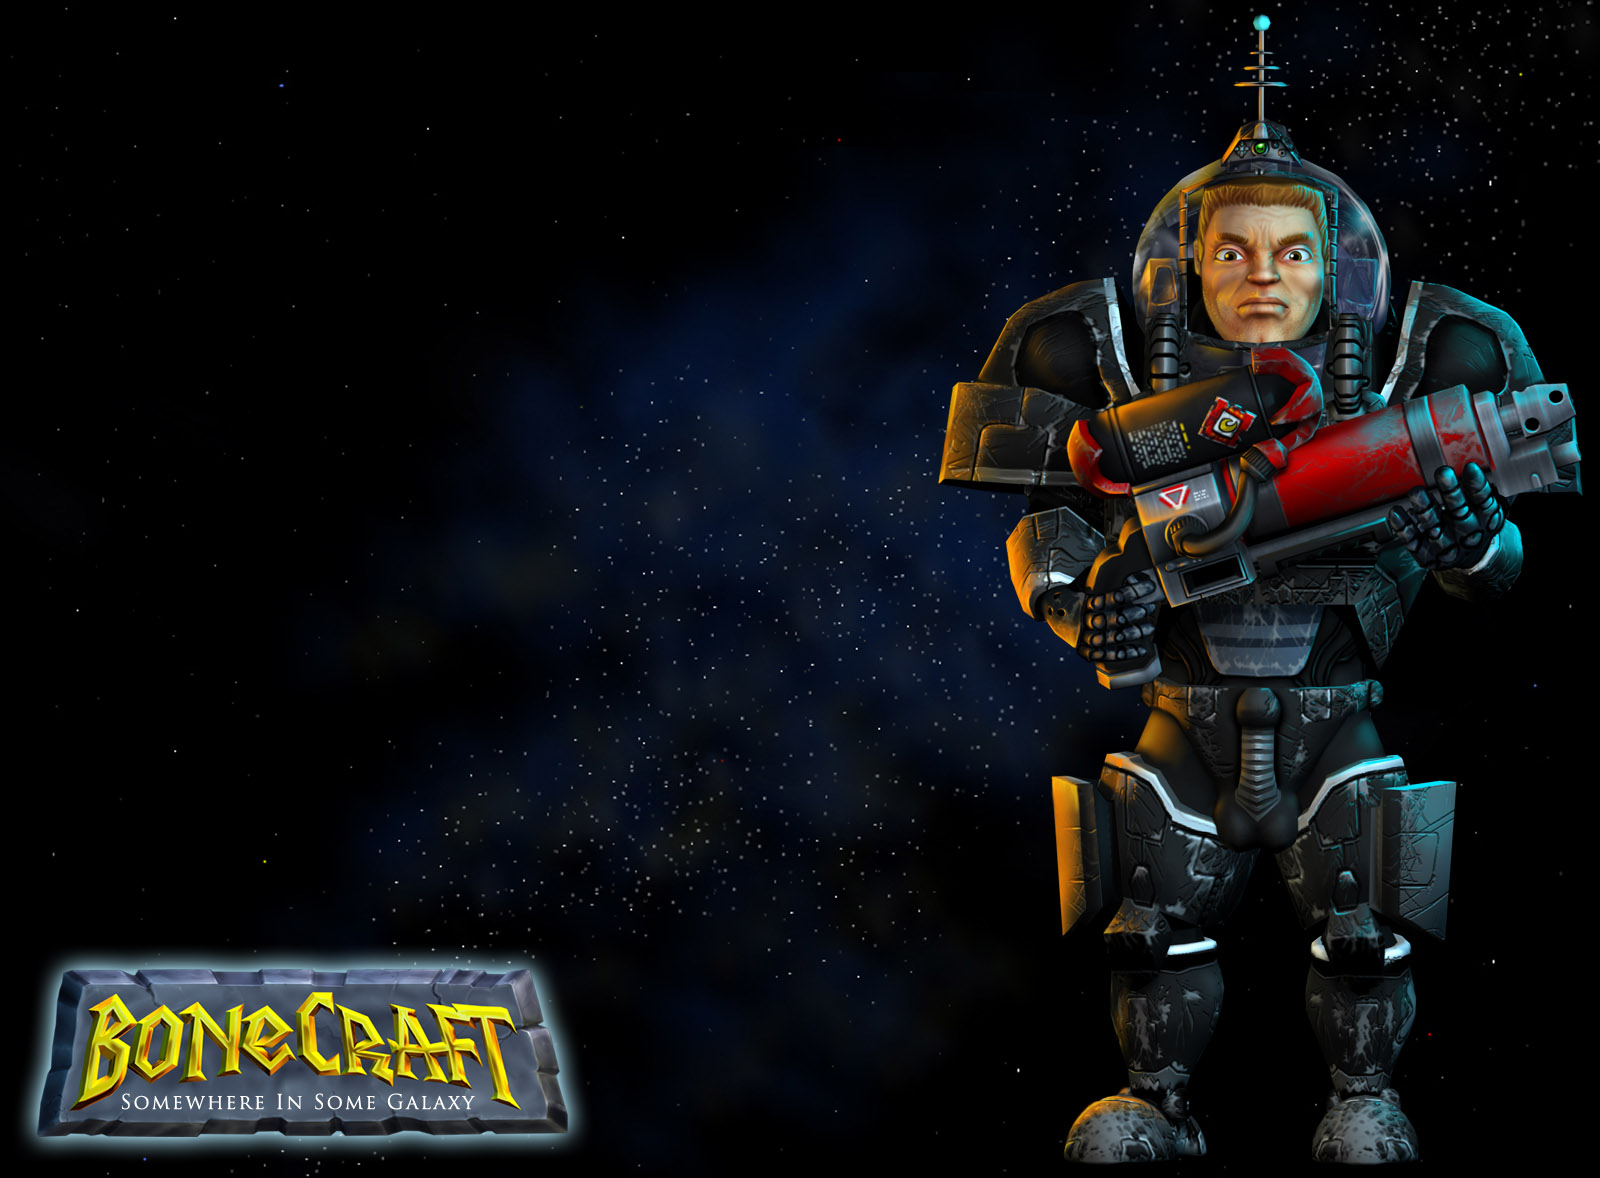 BoneCraft Space Wrangler Wallpaper